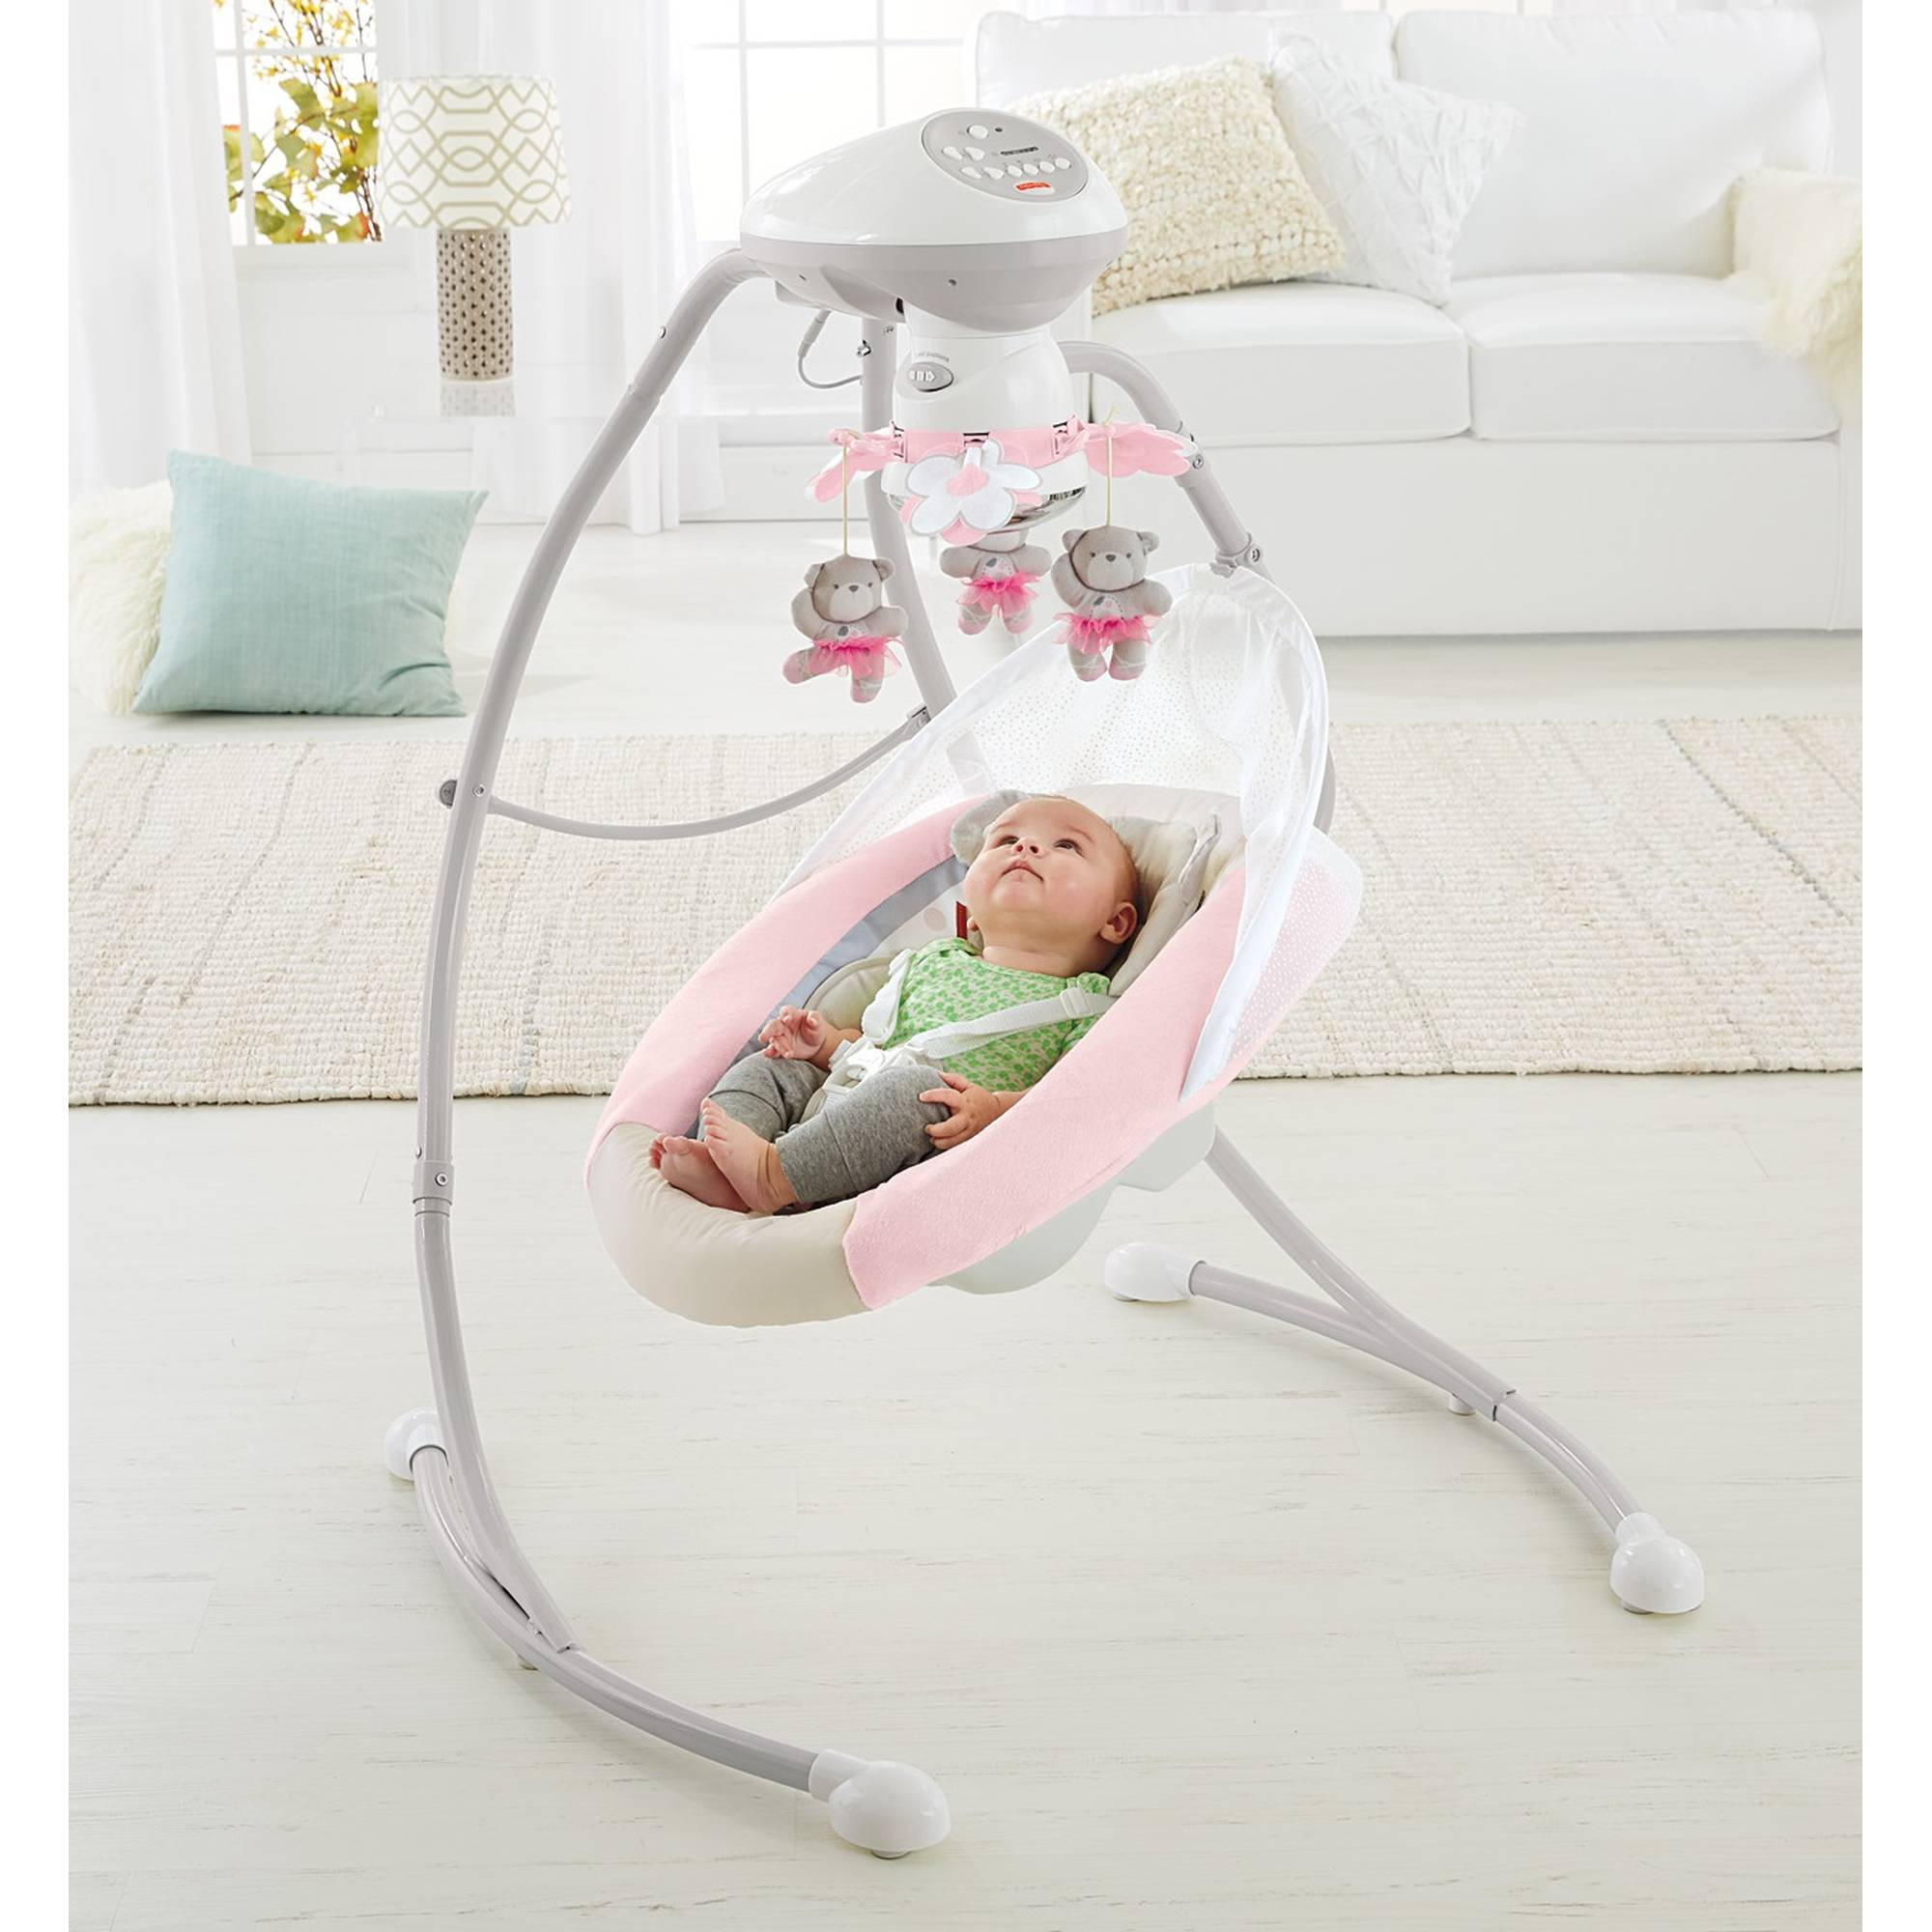 Fisher-Price My Little Snugabear Cradle 'n Swing, Pink | eBay